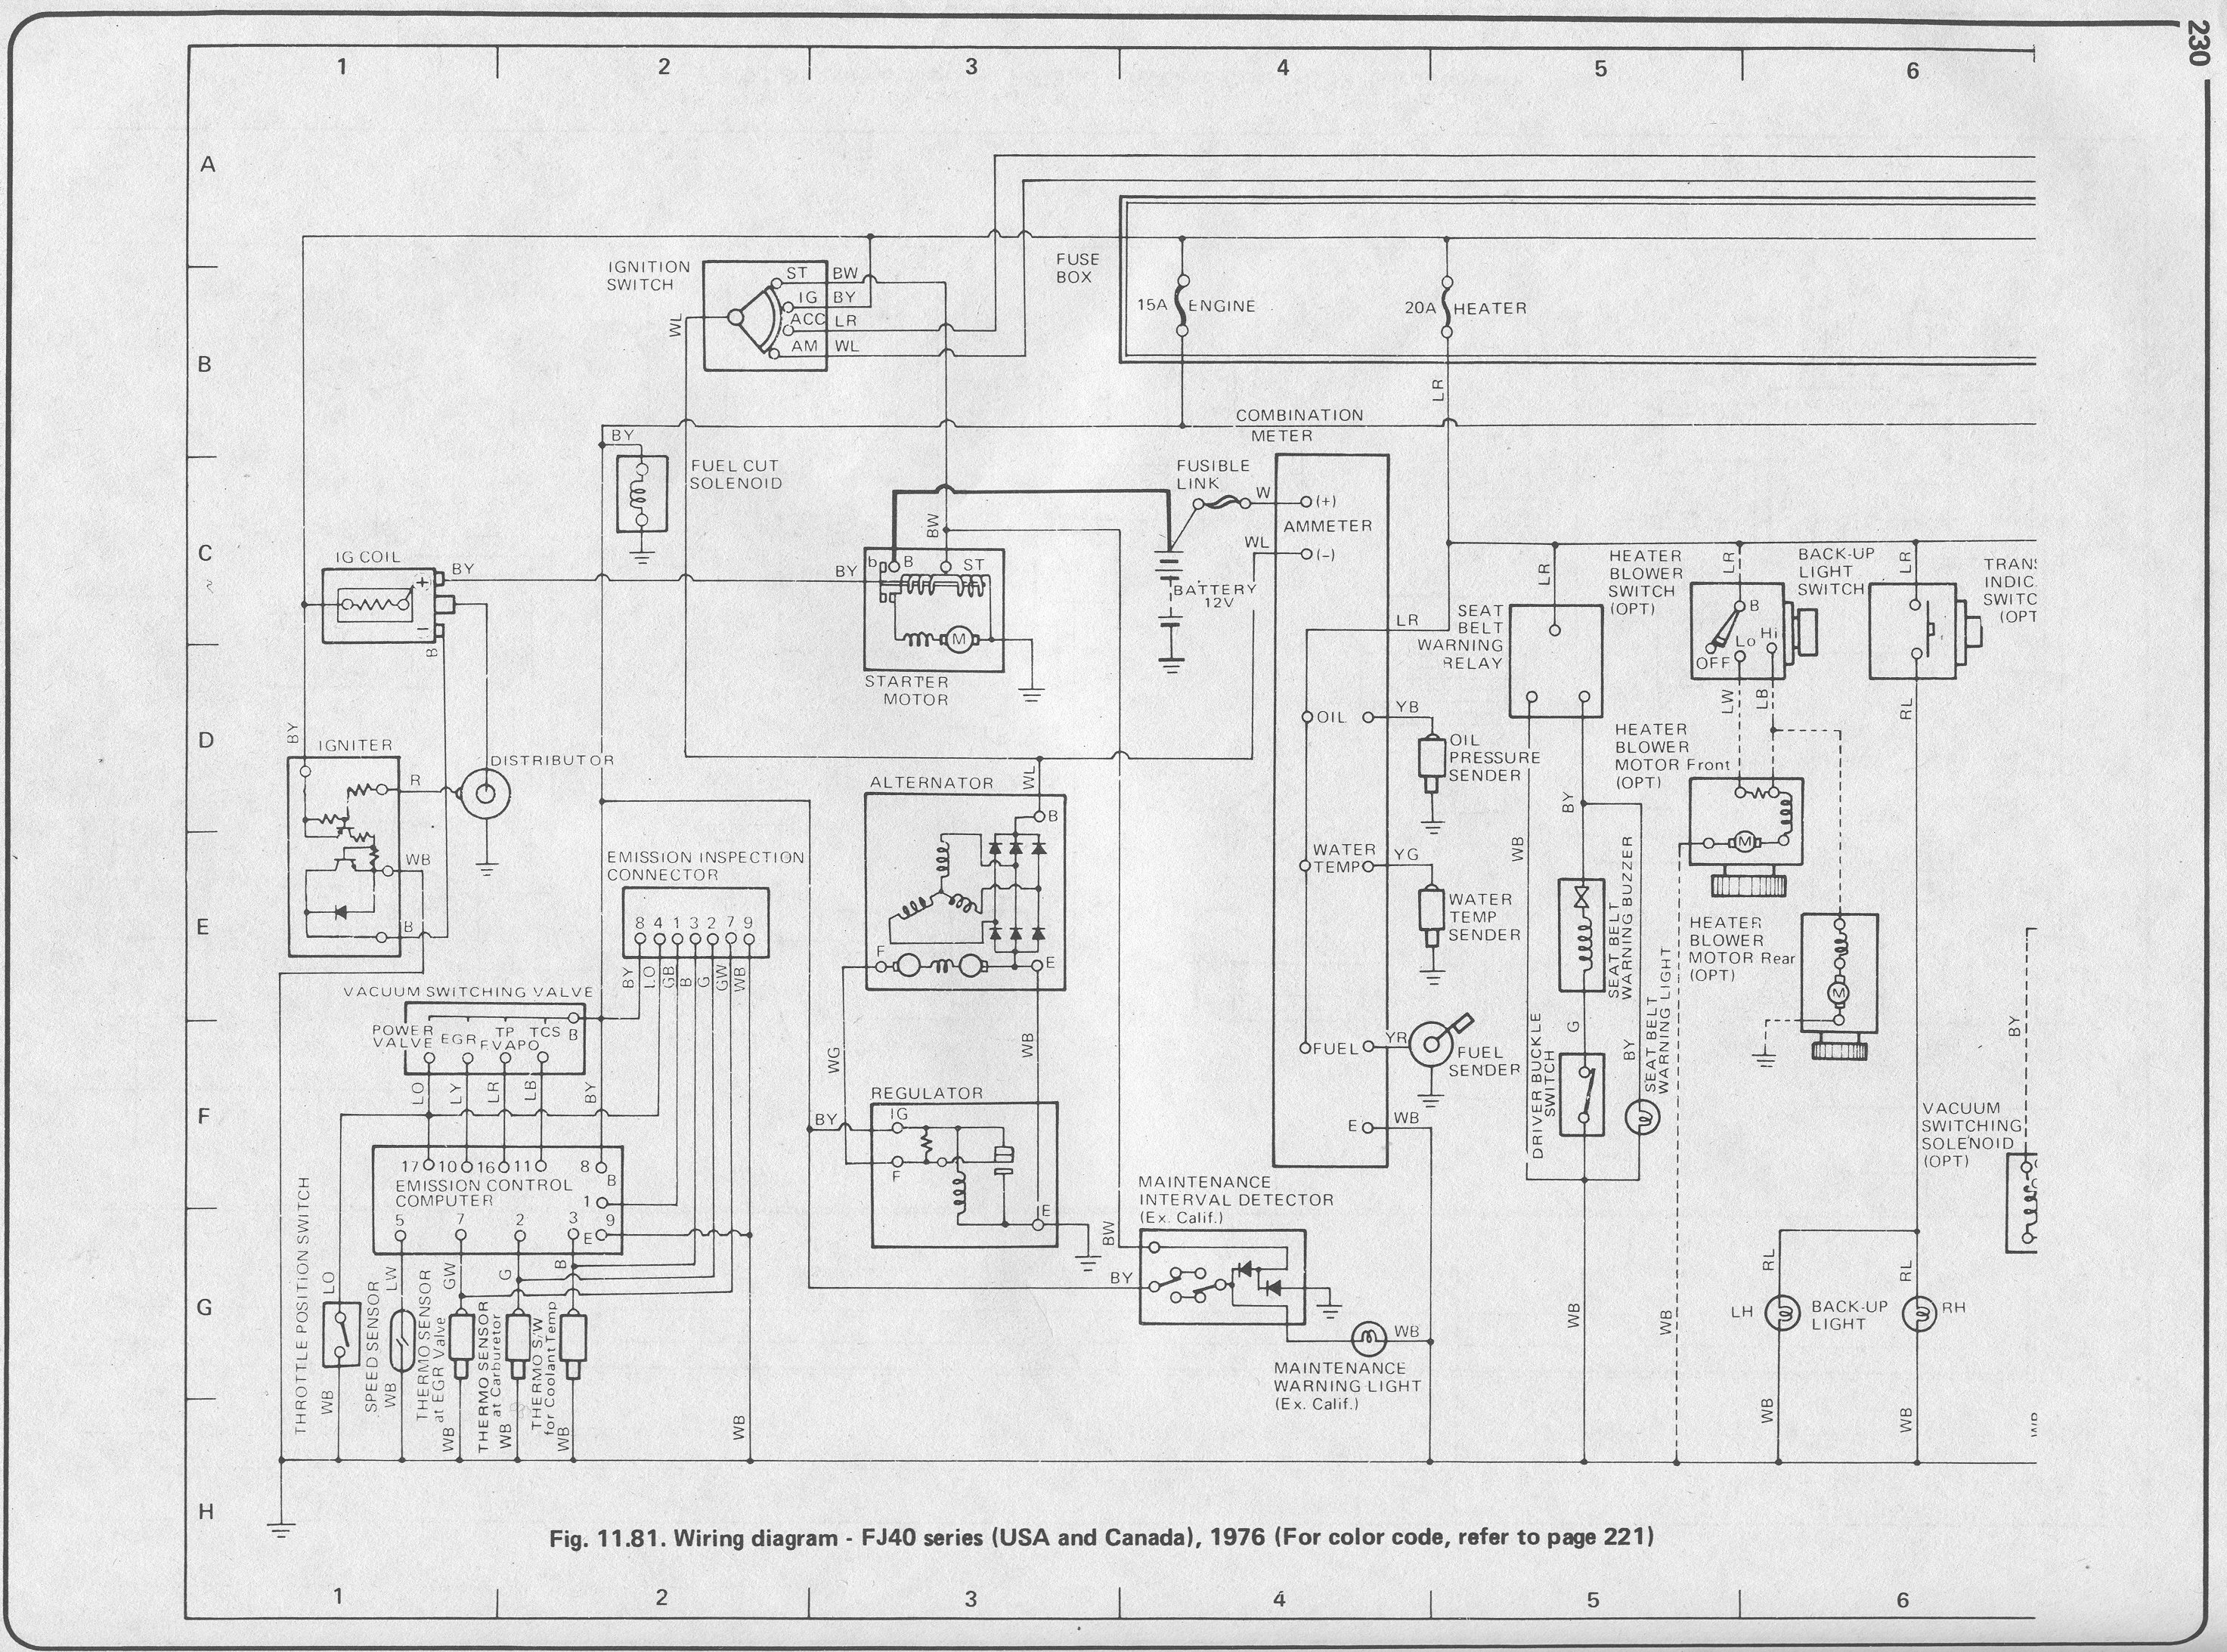 pioneer deh p3900mp wiring diagram wiring diagram and hernes need wiring diagram for pioneer deh p3900mp p4100ub